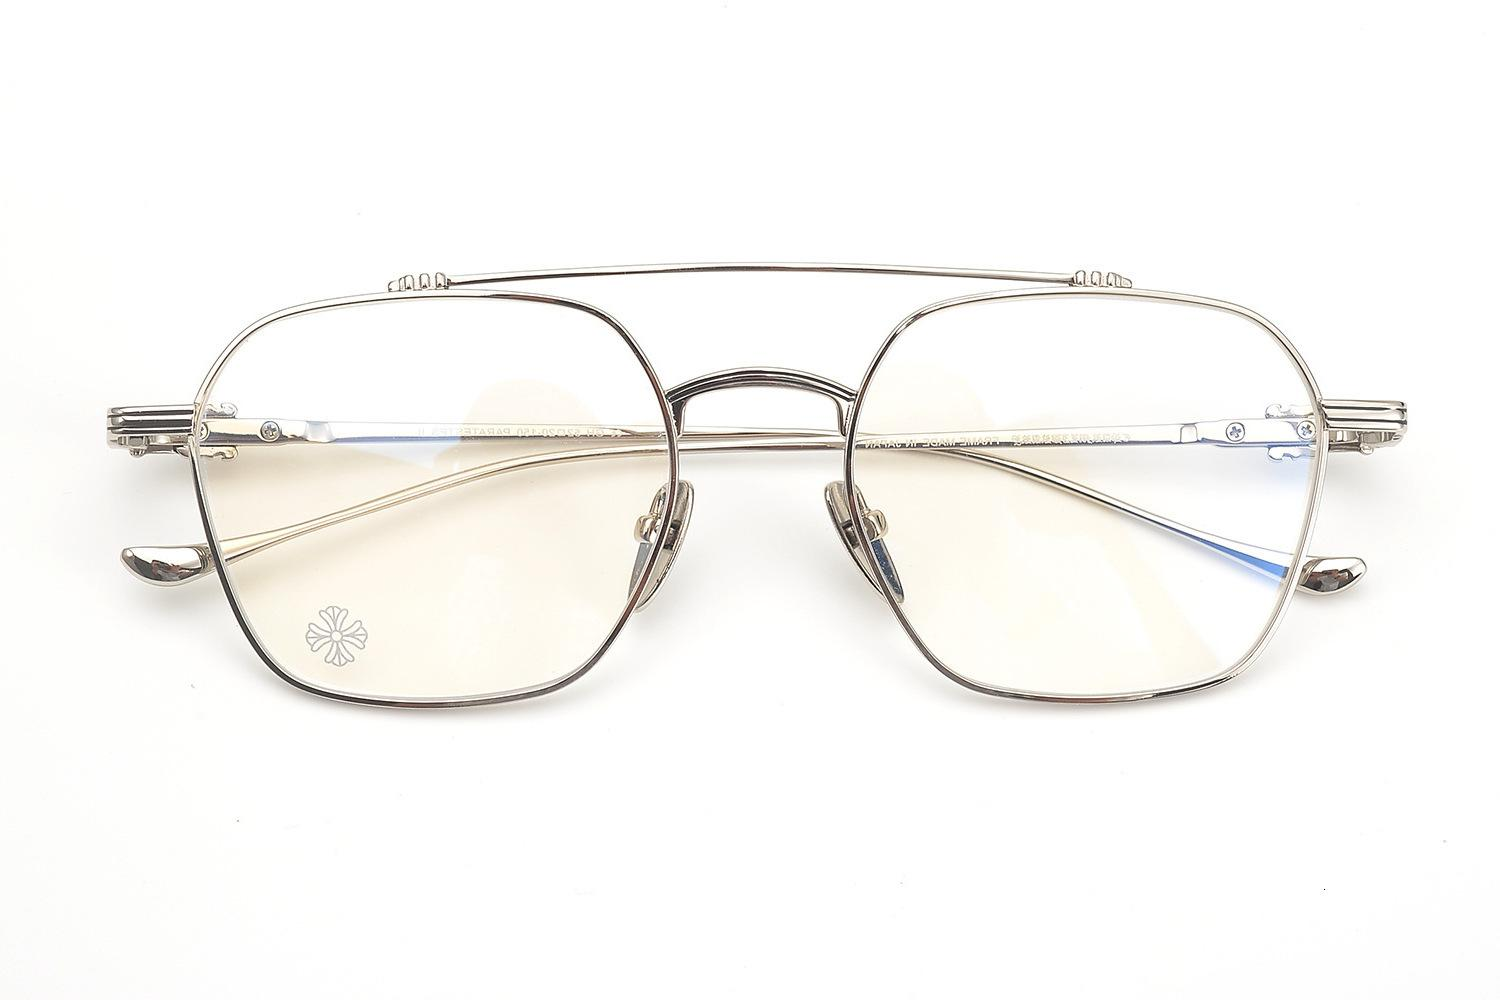 Crosing Glasses Frame Male Chen Weiting Same Flat Lens Large Face Myopia Female Personality Versatile